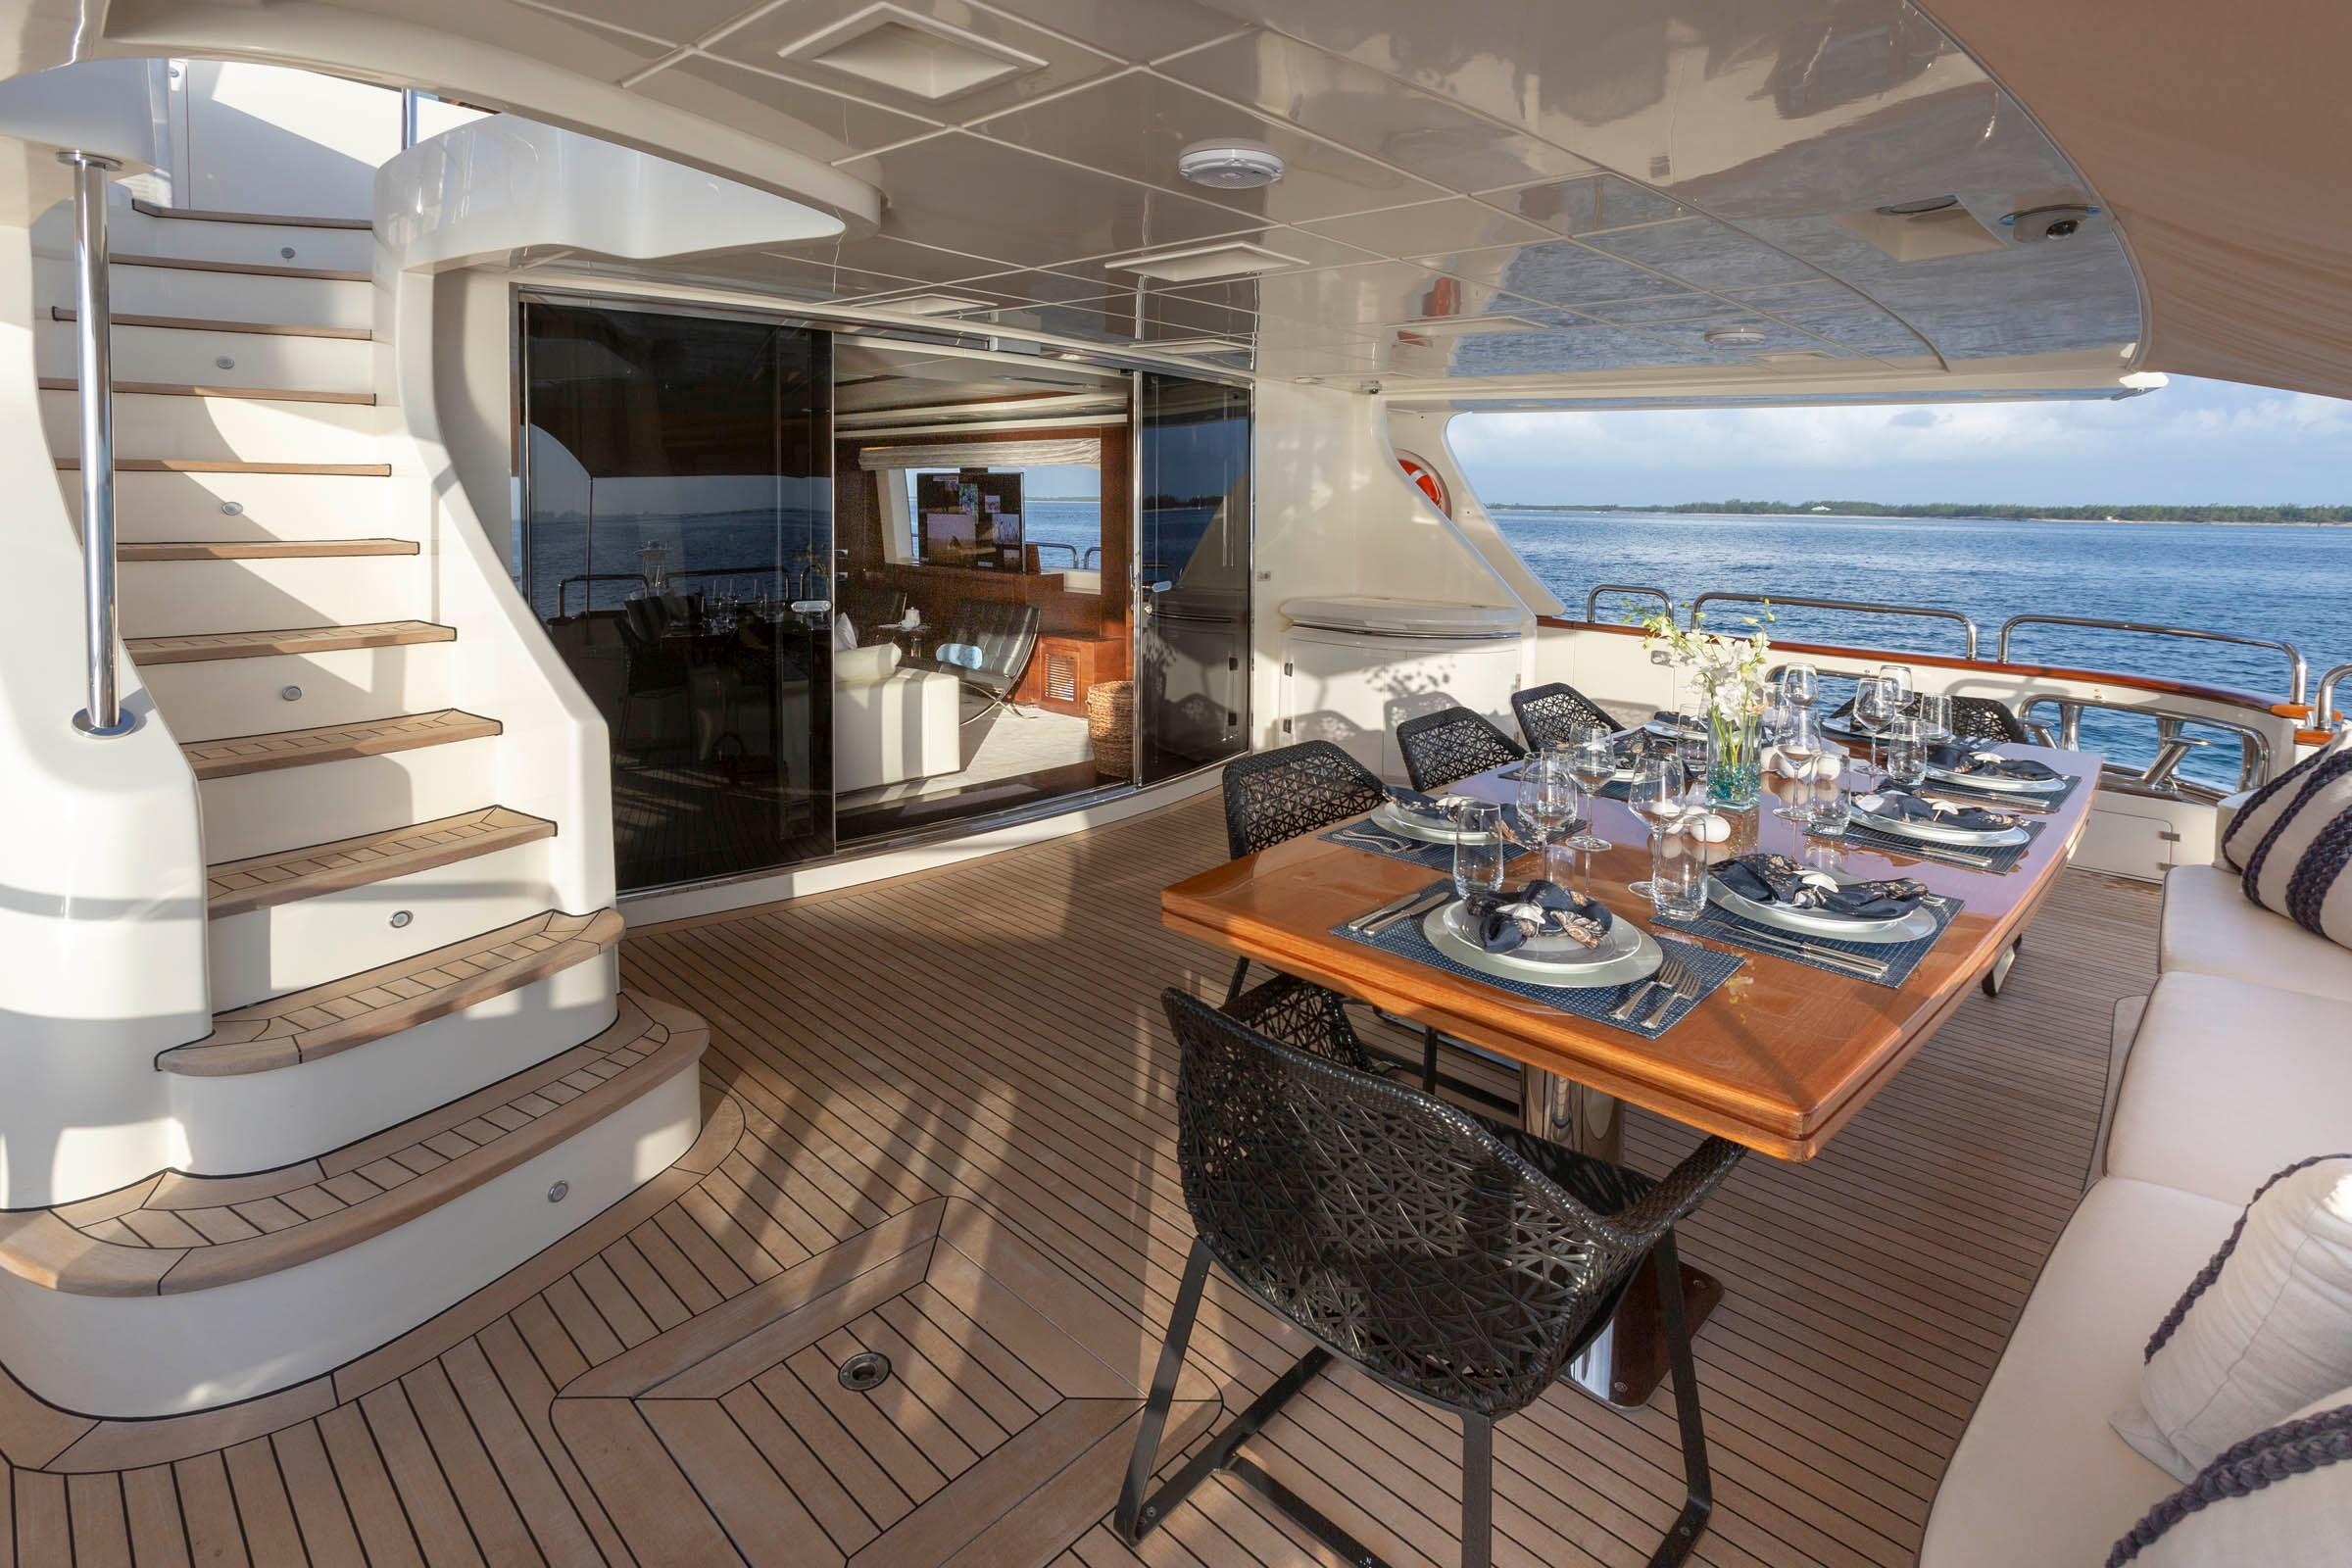 105 Azimut Access to Flybridge from Main deck aft